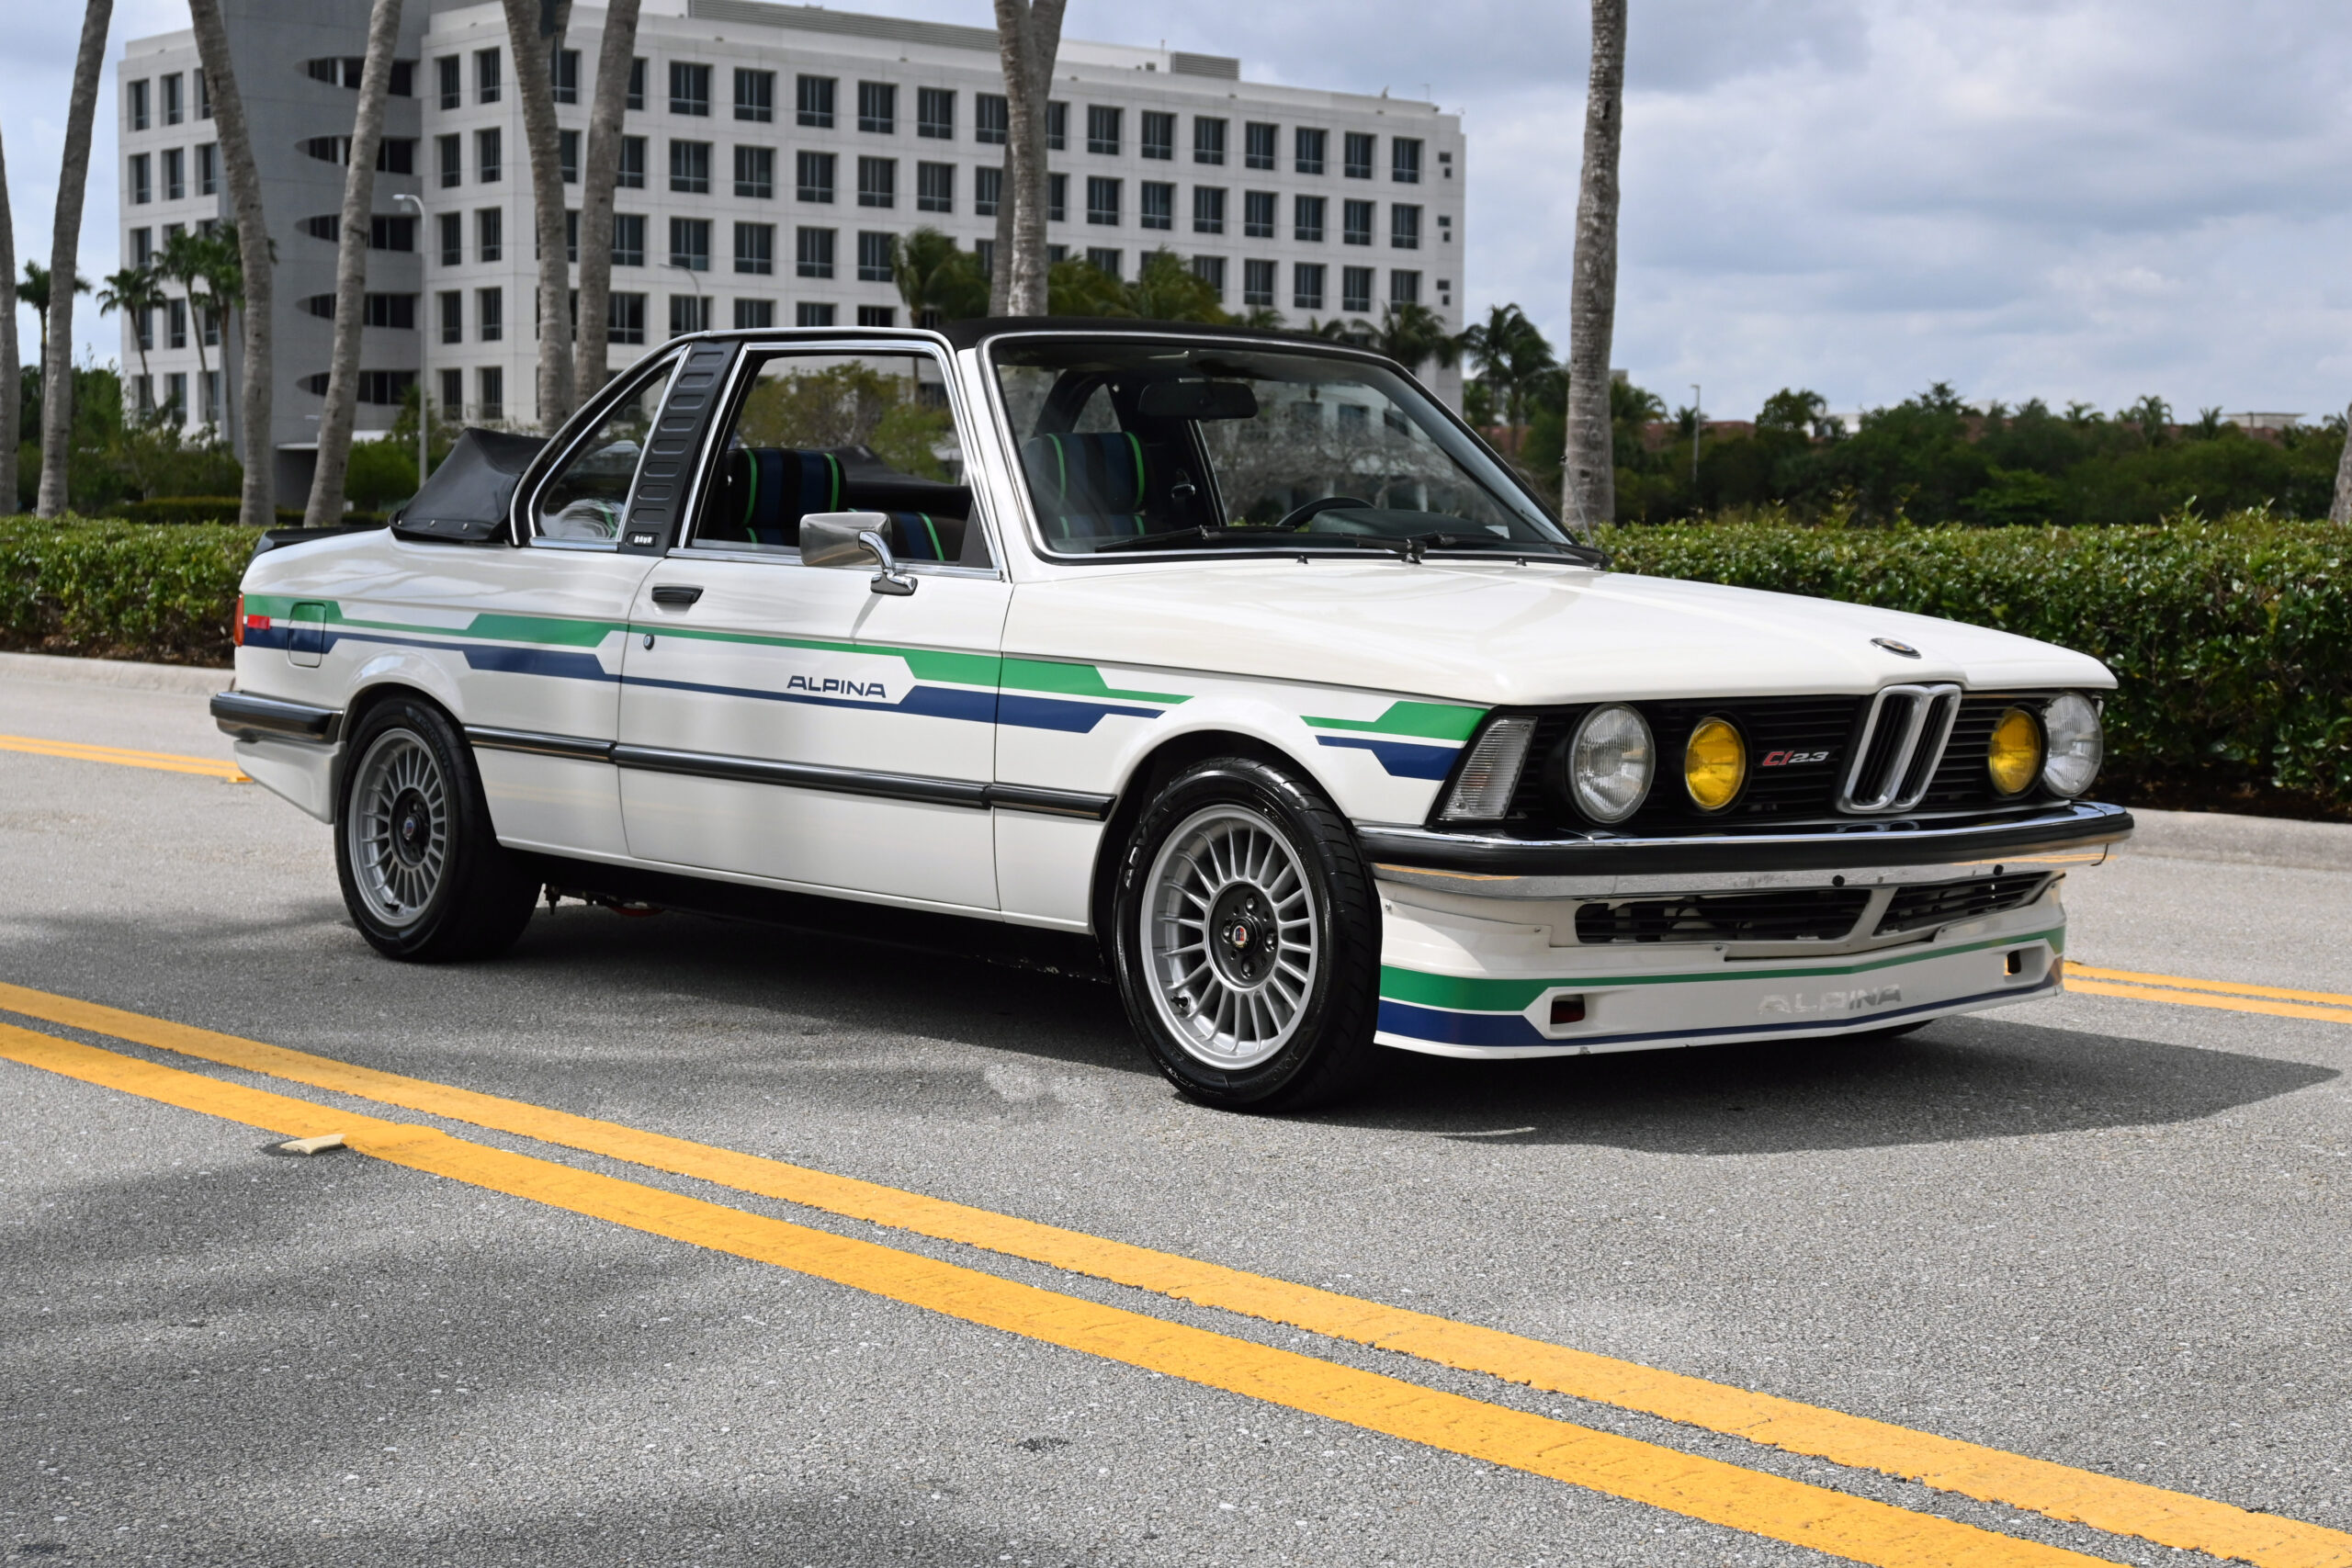 1979 BMW 320 Baur.  Rare authentic Baur coach work, Alpina upgrades, Schnitzer 2.7 Stroker Engine, Big Brakes incredible build